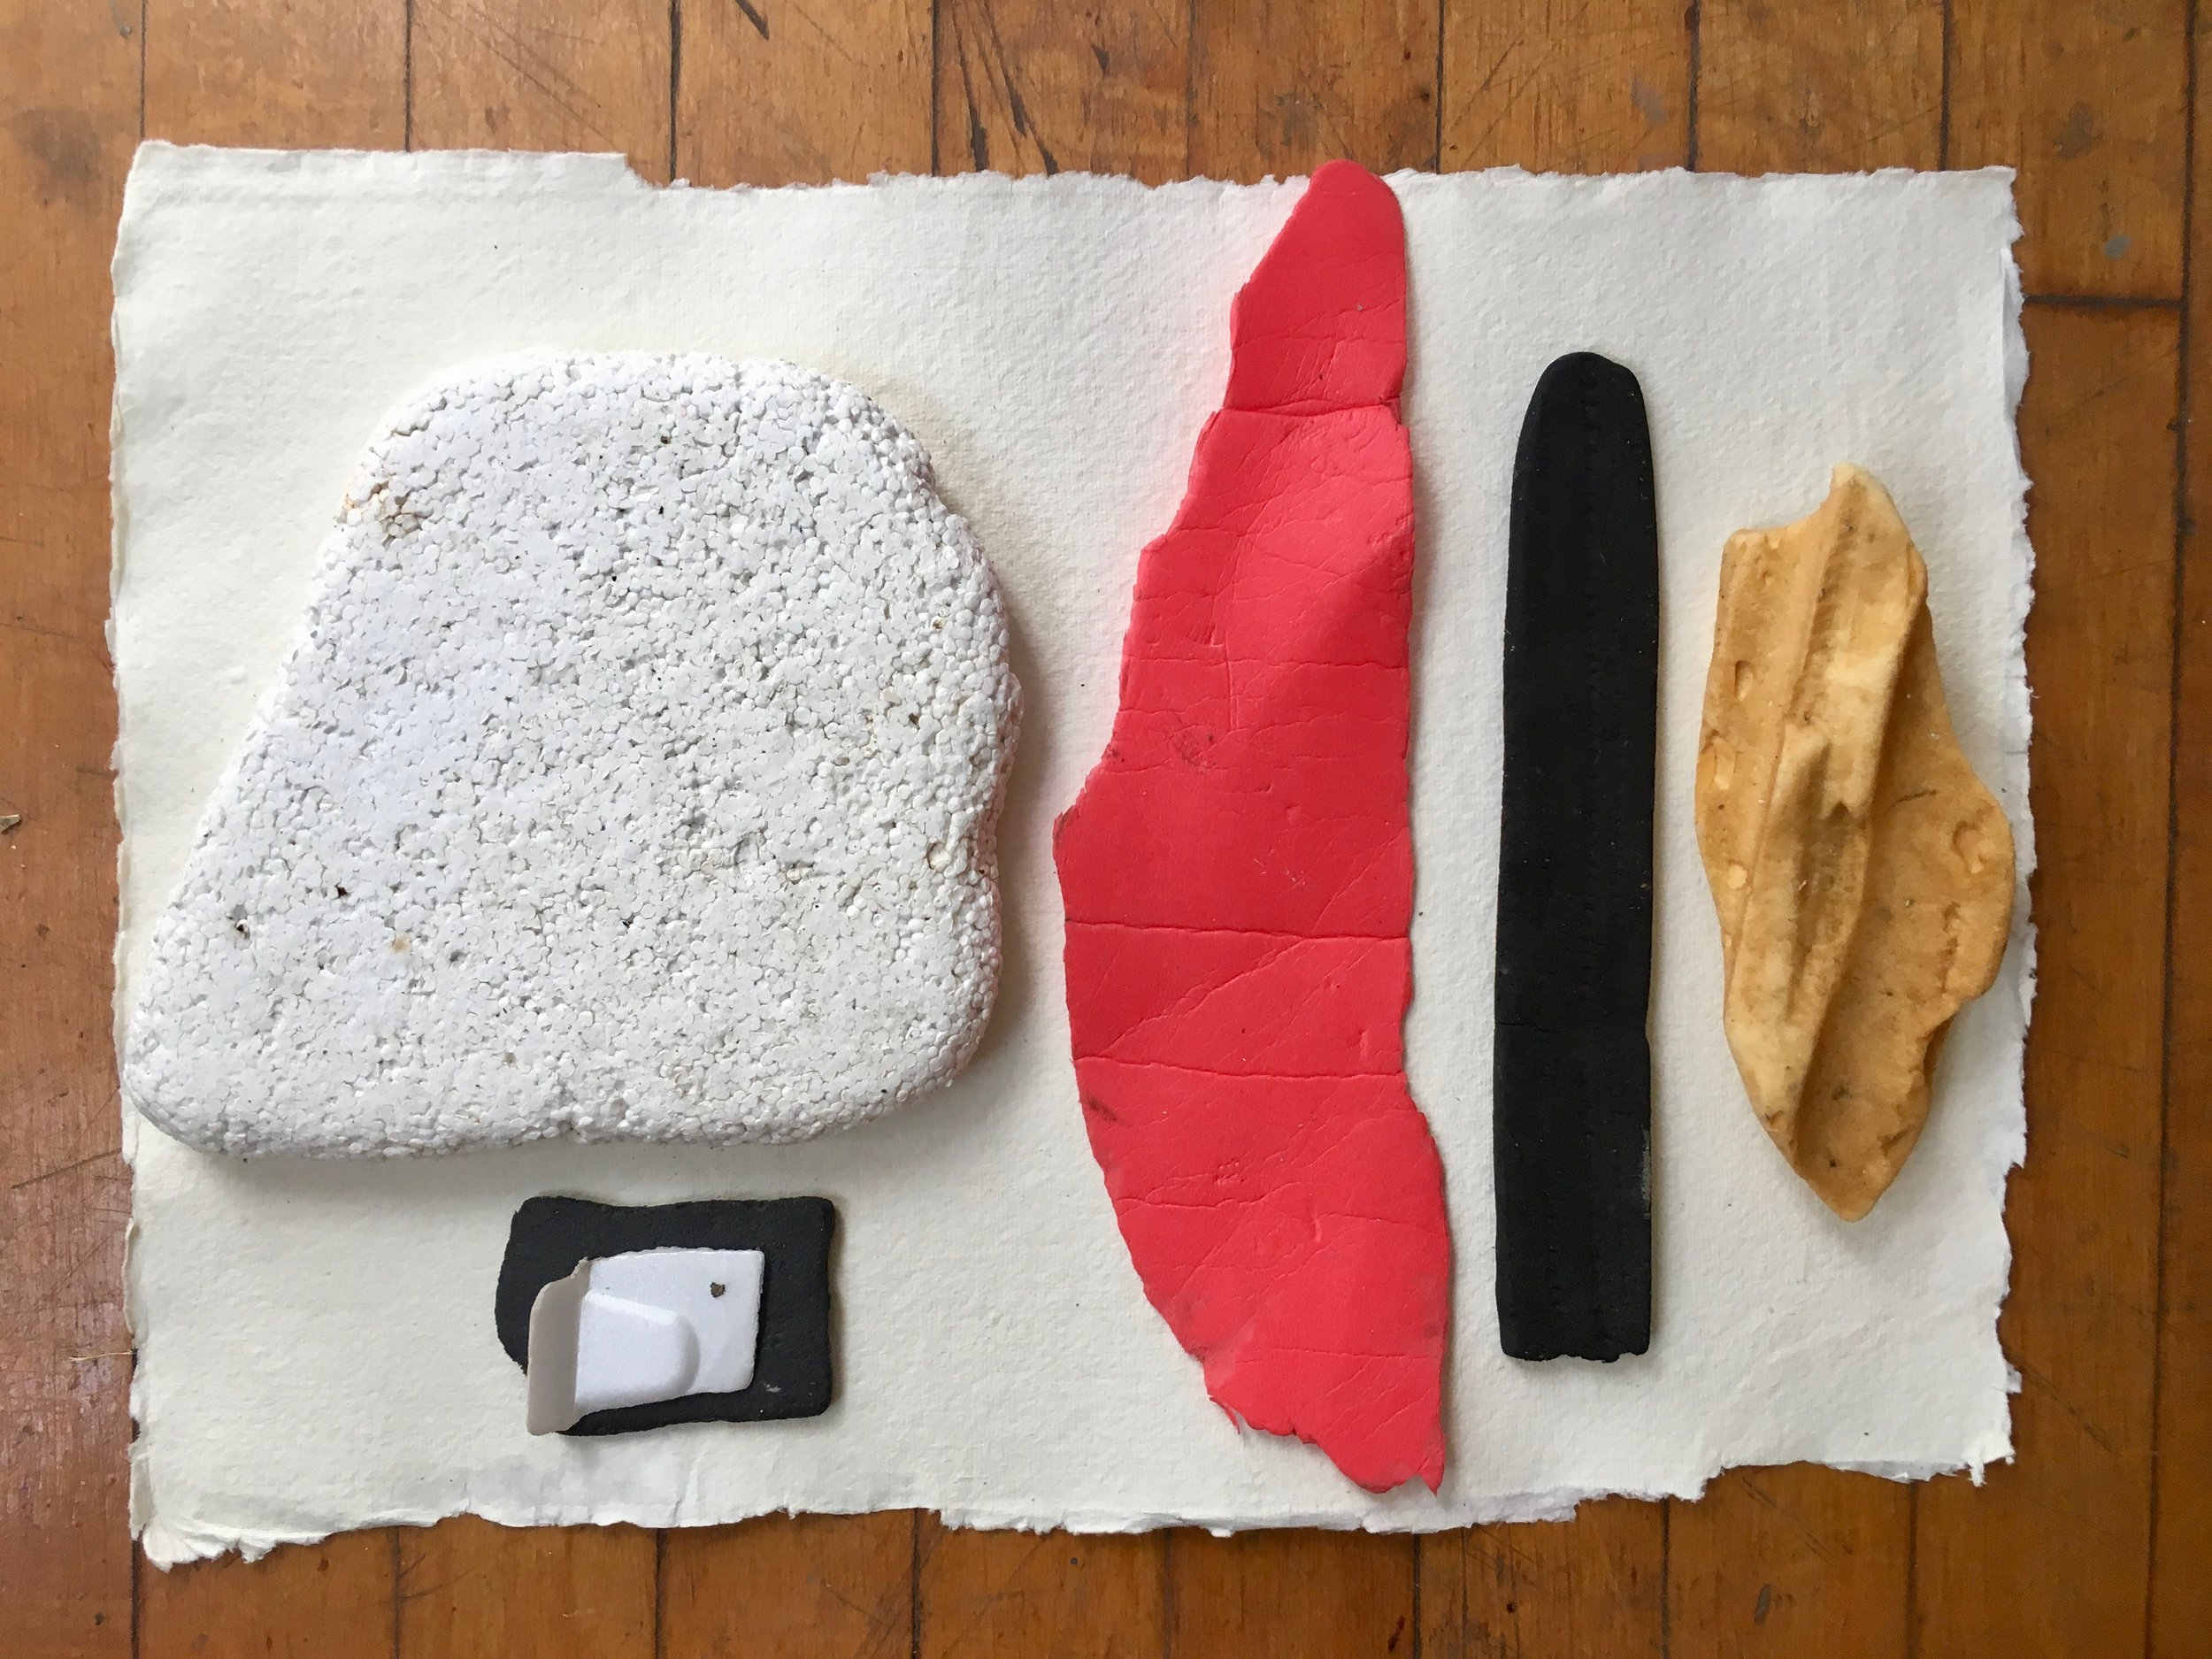 Materials found on the shoreline of Governors Island